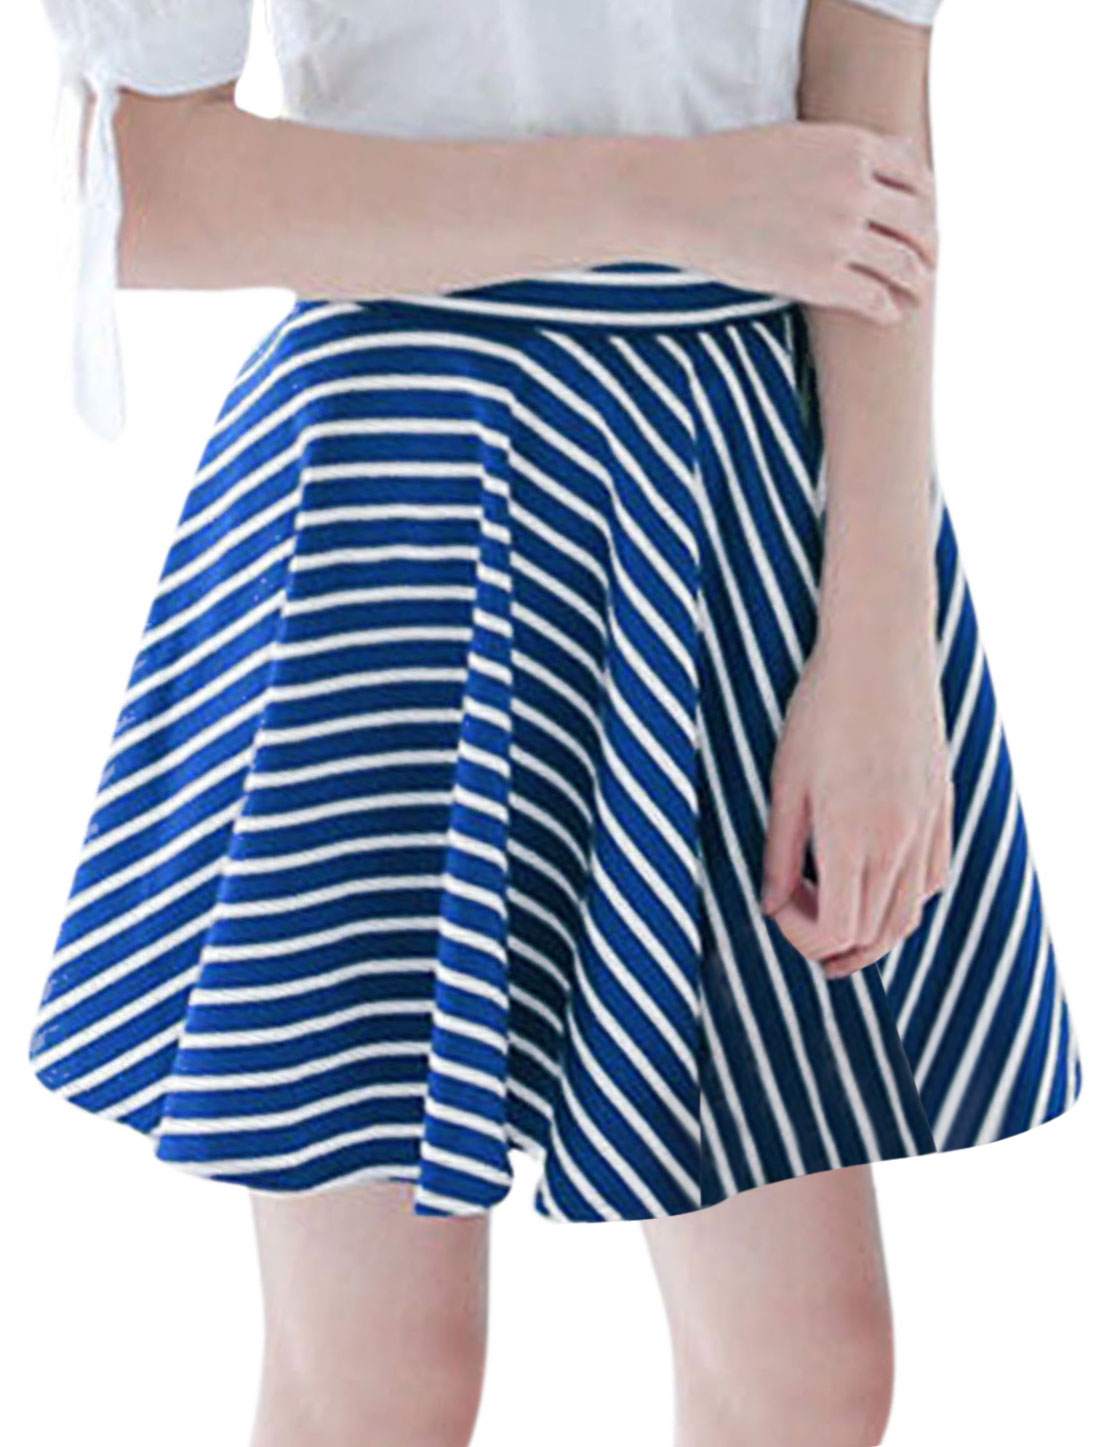 Women Elastic Waist Stripes A Line Sweet NEW Skirt Royal Blue White XS